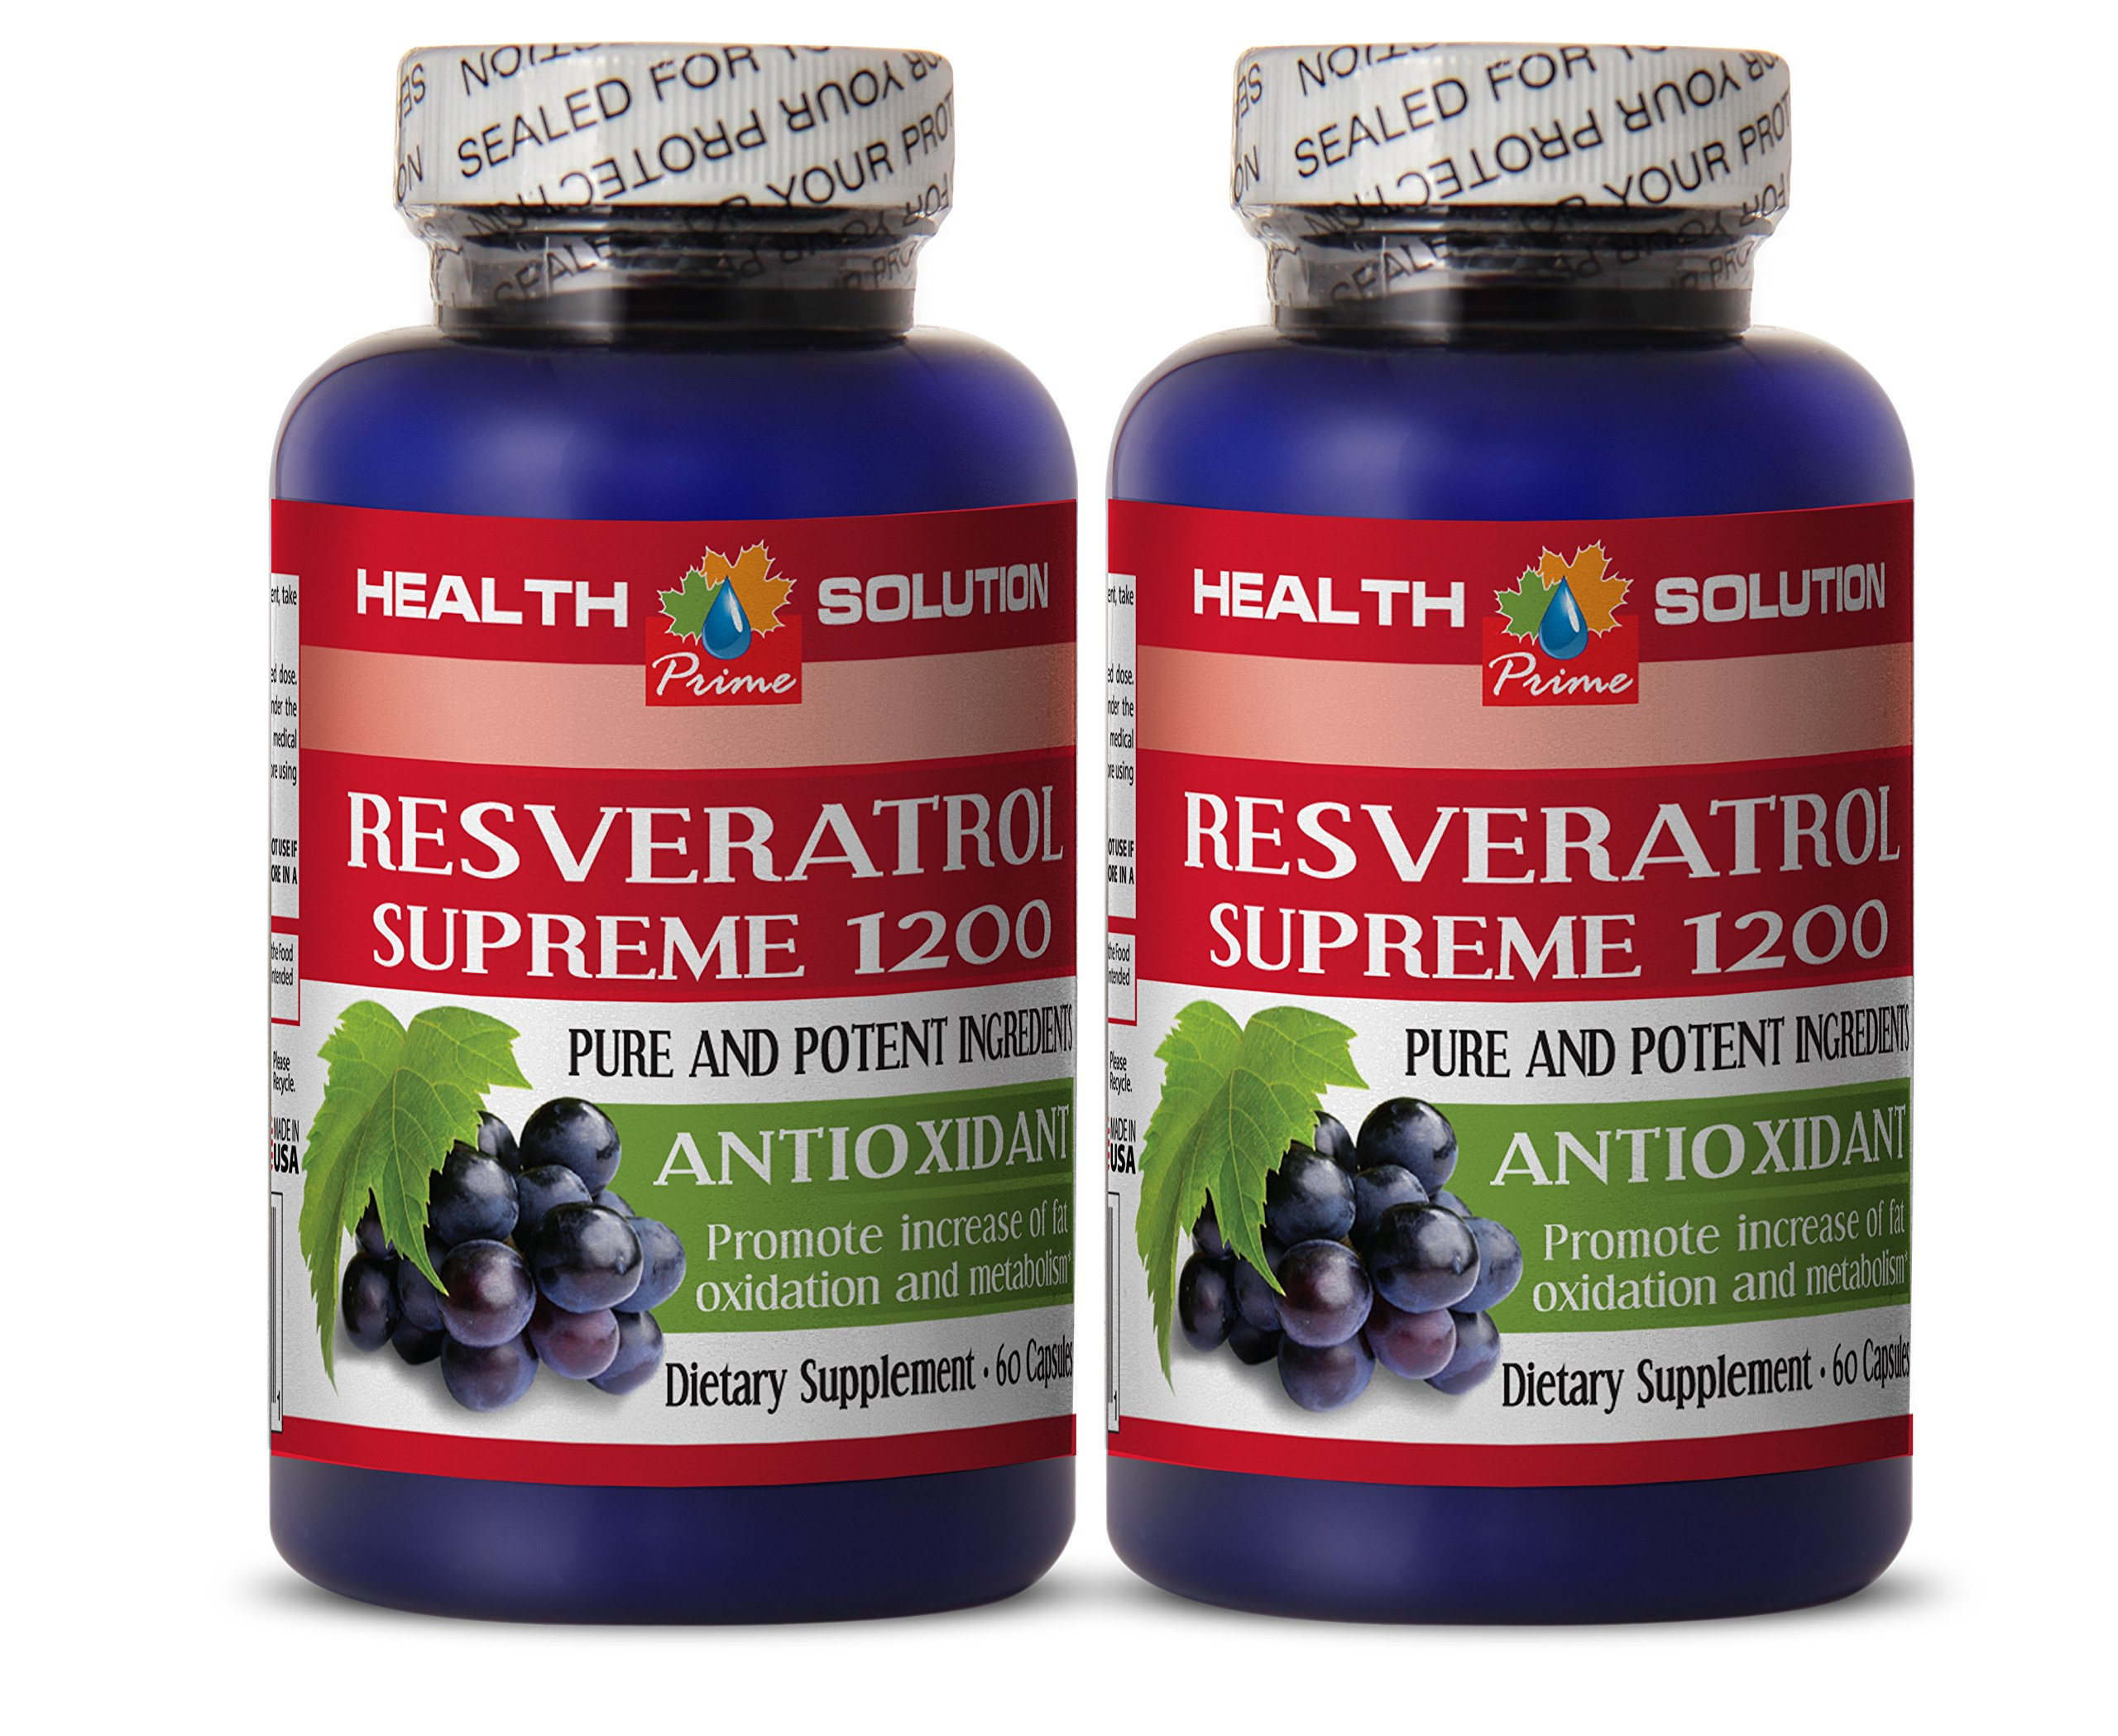 Testosterone booster for men sex - RESVERATROL SUPREME 1200 - Resveratrol vitamins - 2 Bottle 120 Capsules